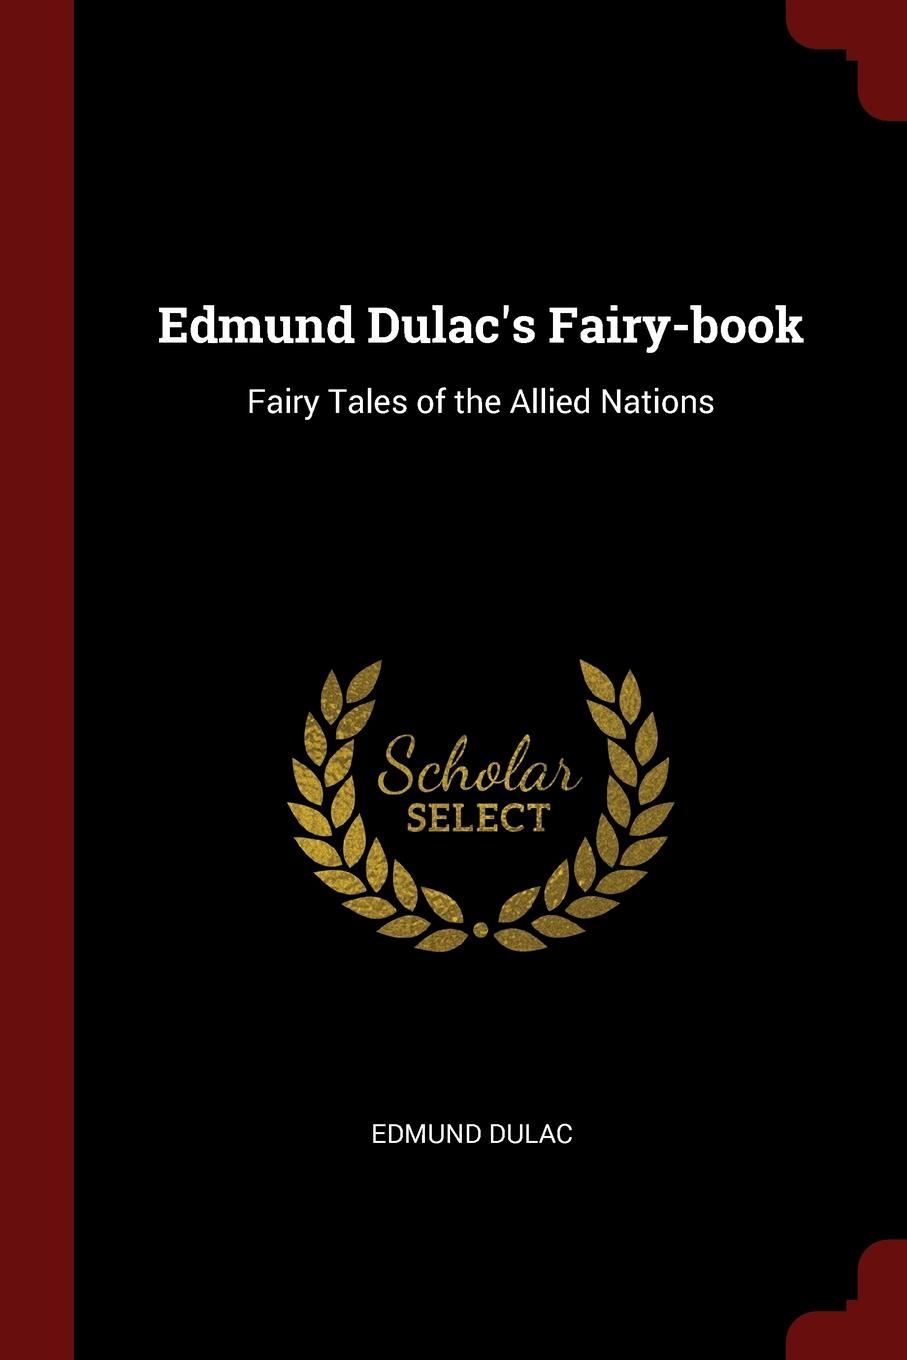 Edmund Dulac Edmund Dulac.s Fairy-book. Fairy Tales of the Allied Nations